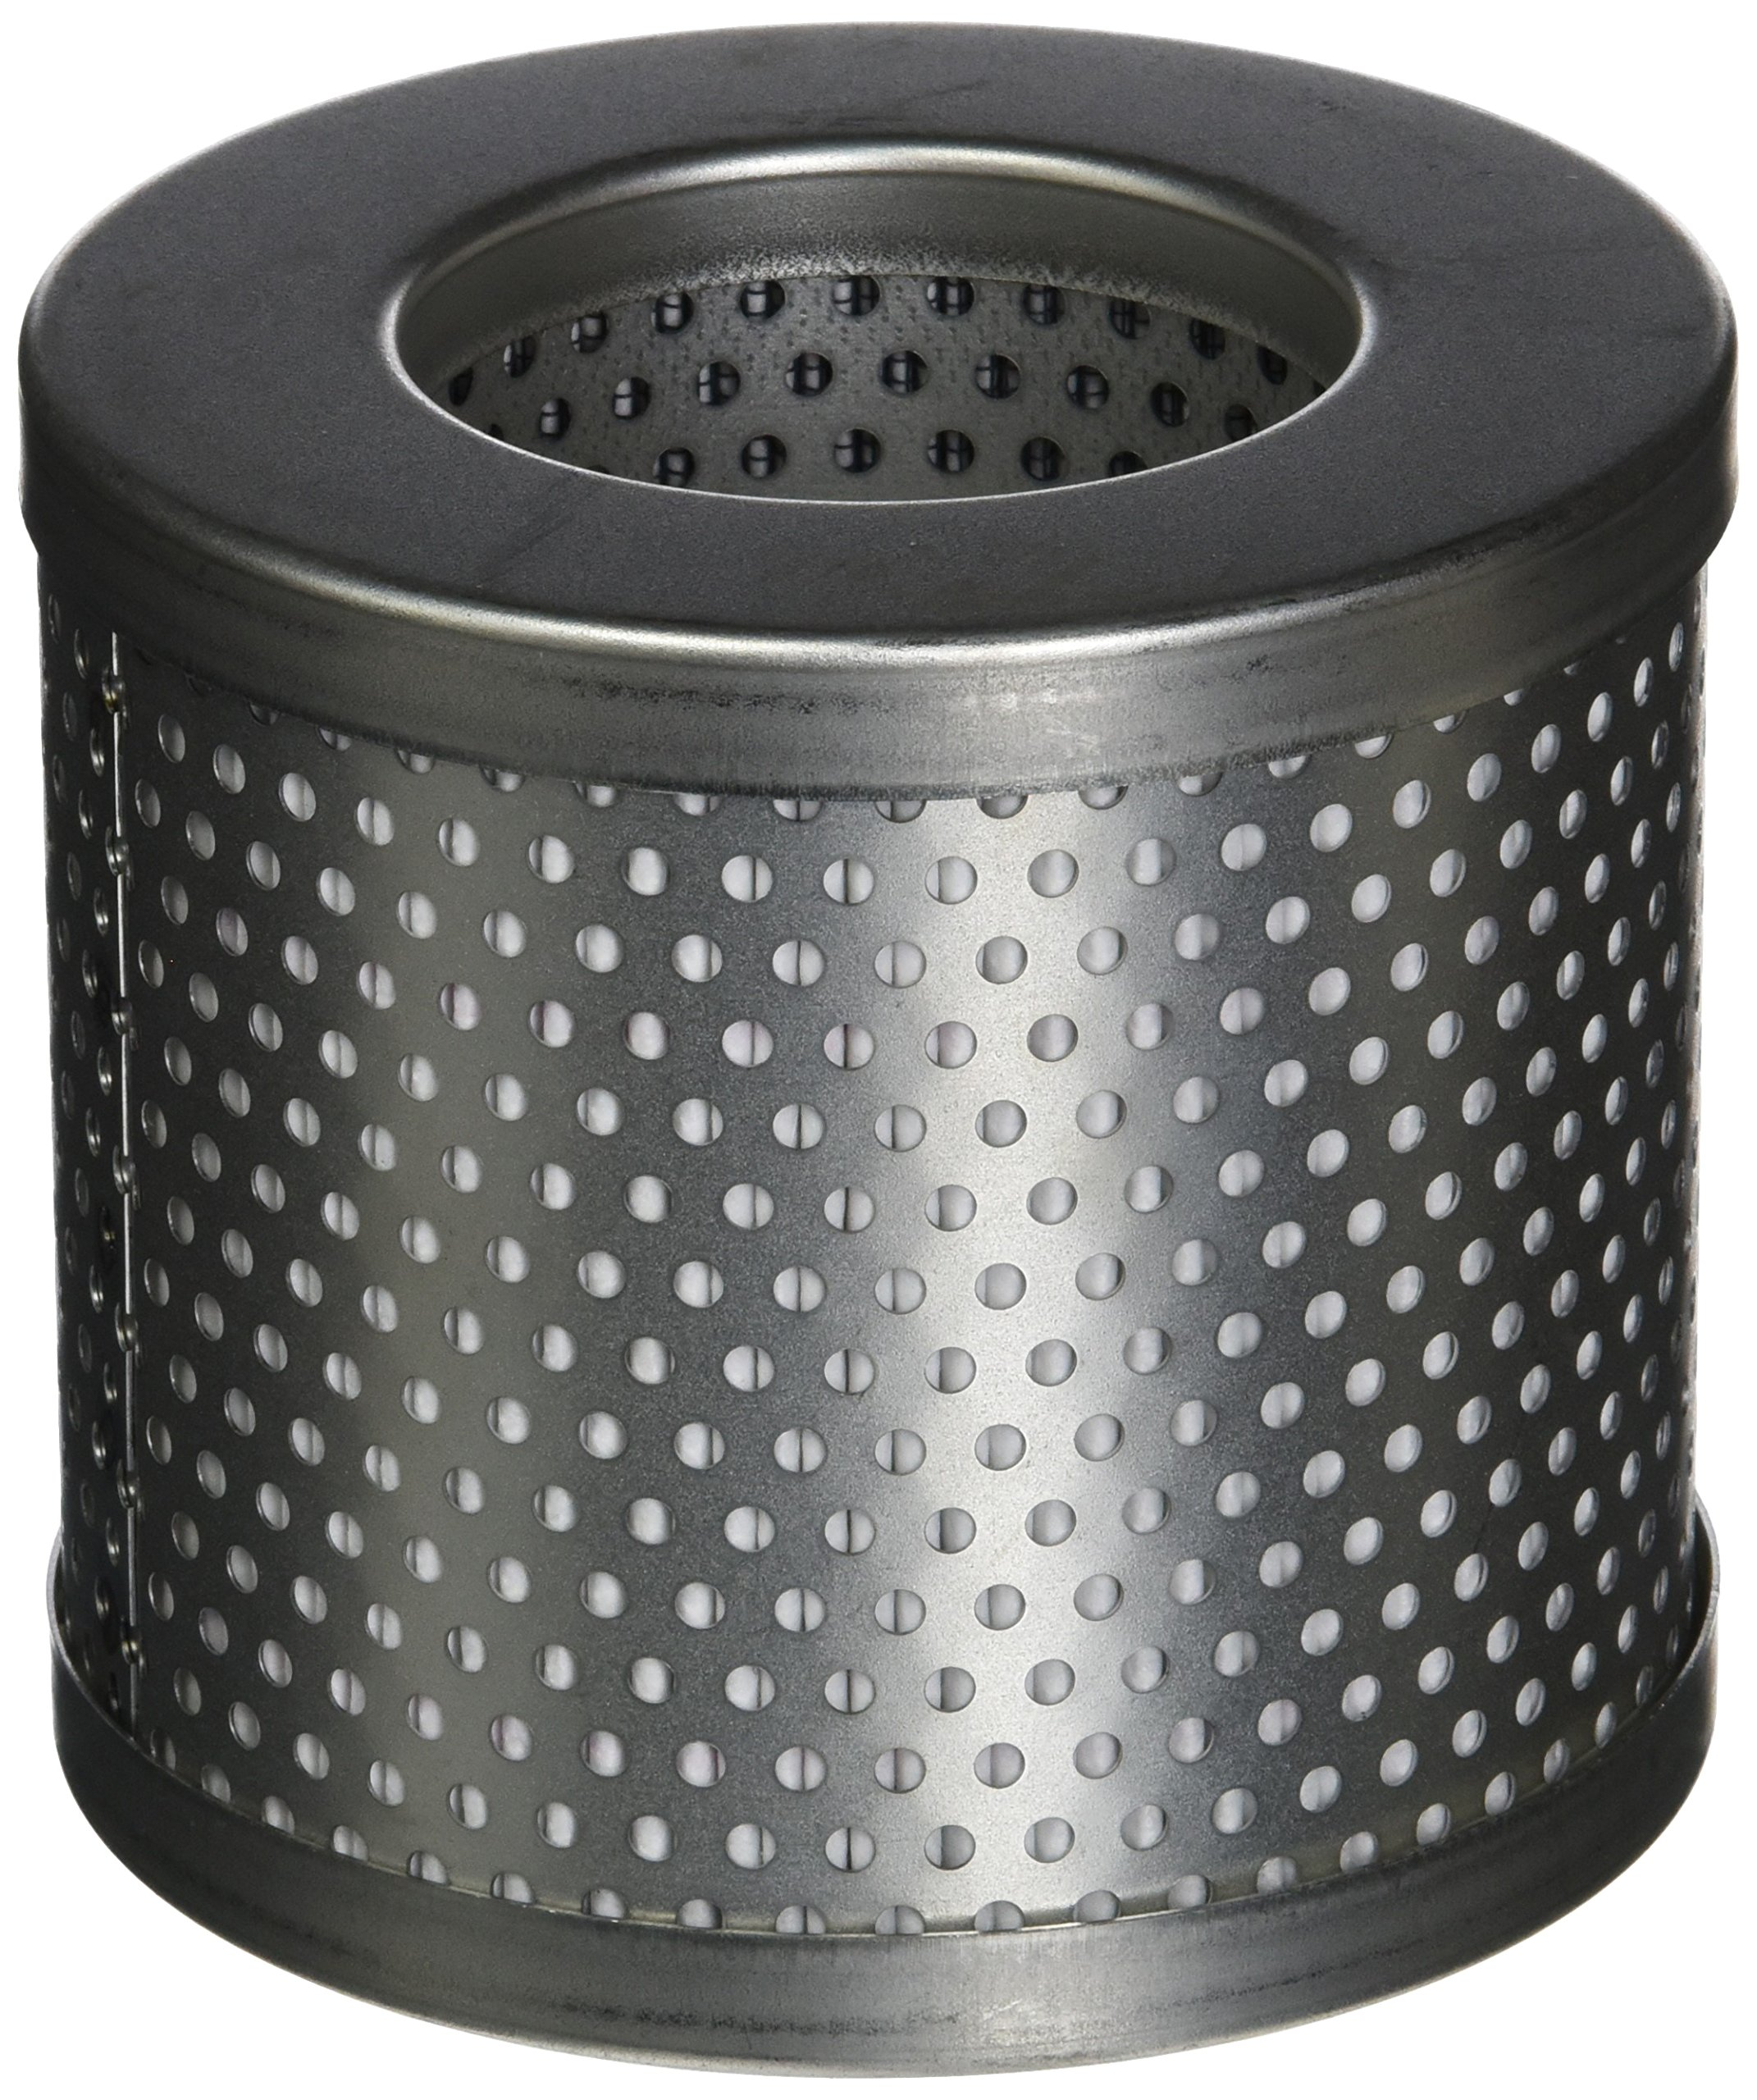 WIX Filters - 57001 Heavy Duty Cartridge Hydraulic Metal, Pack of 1 by Wix